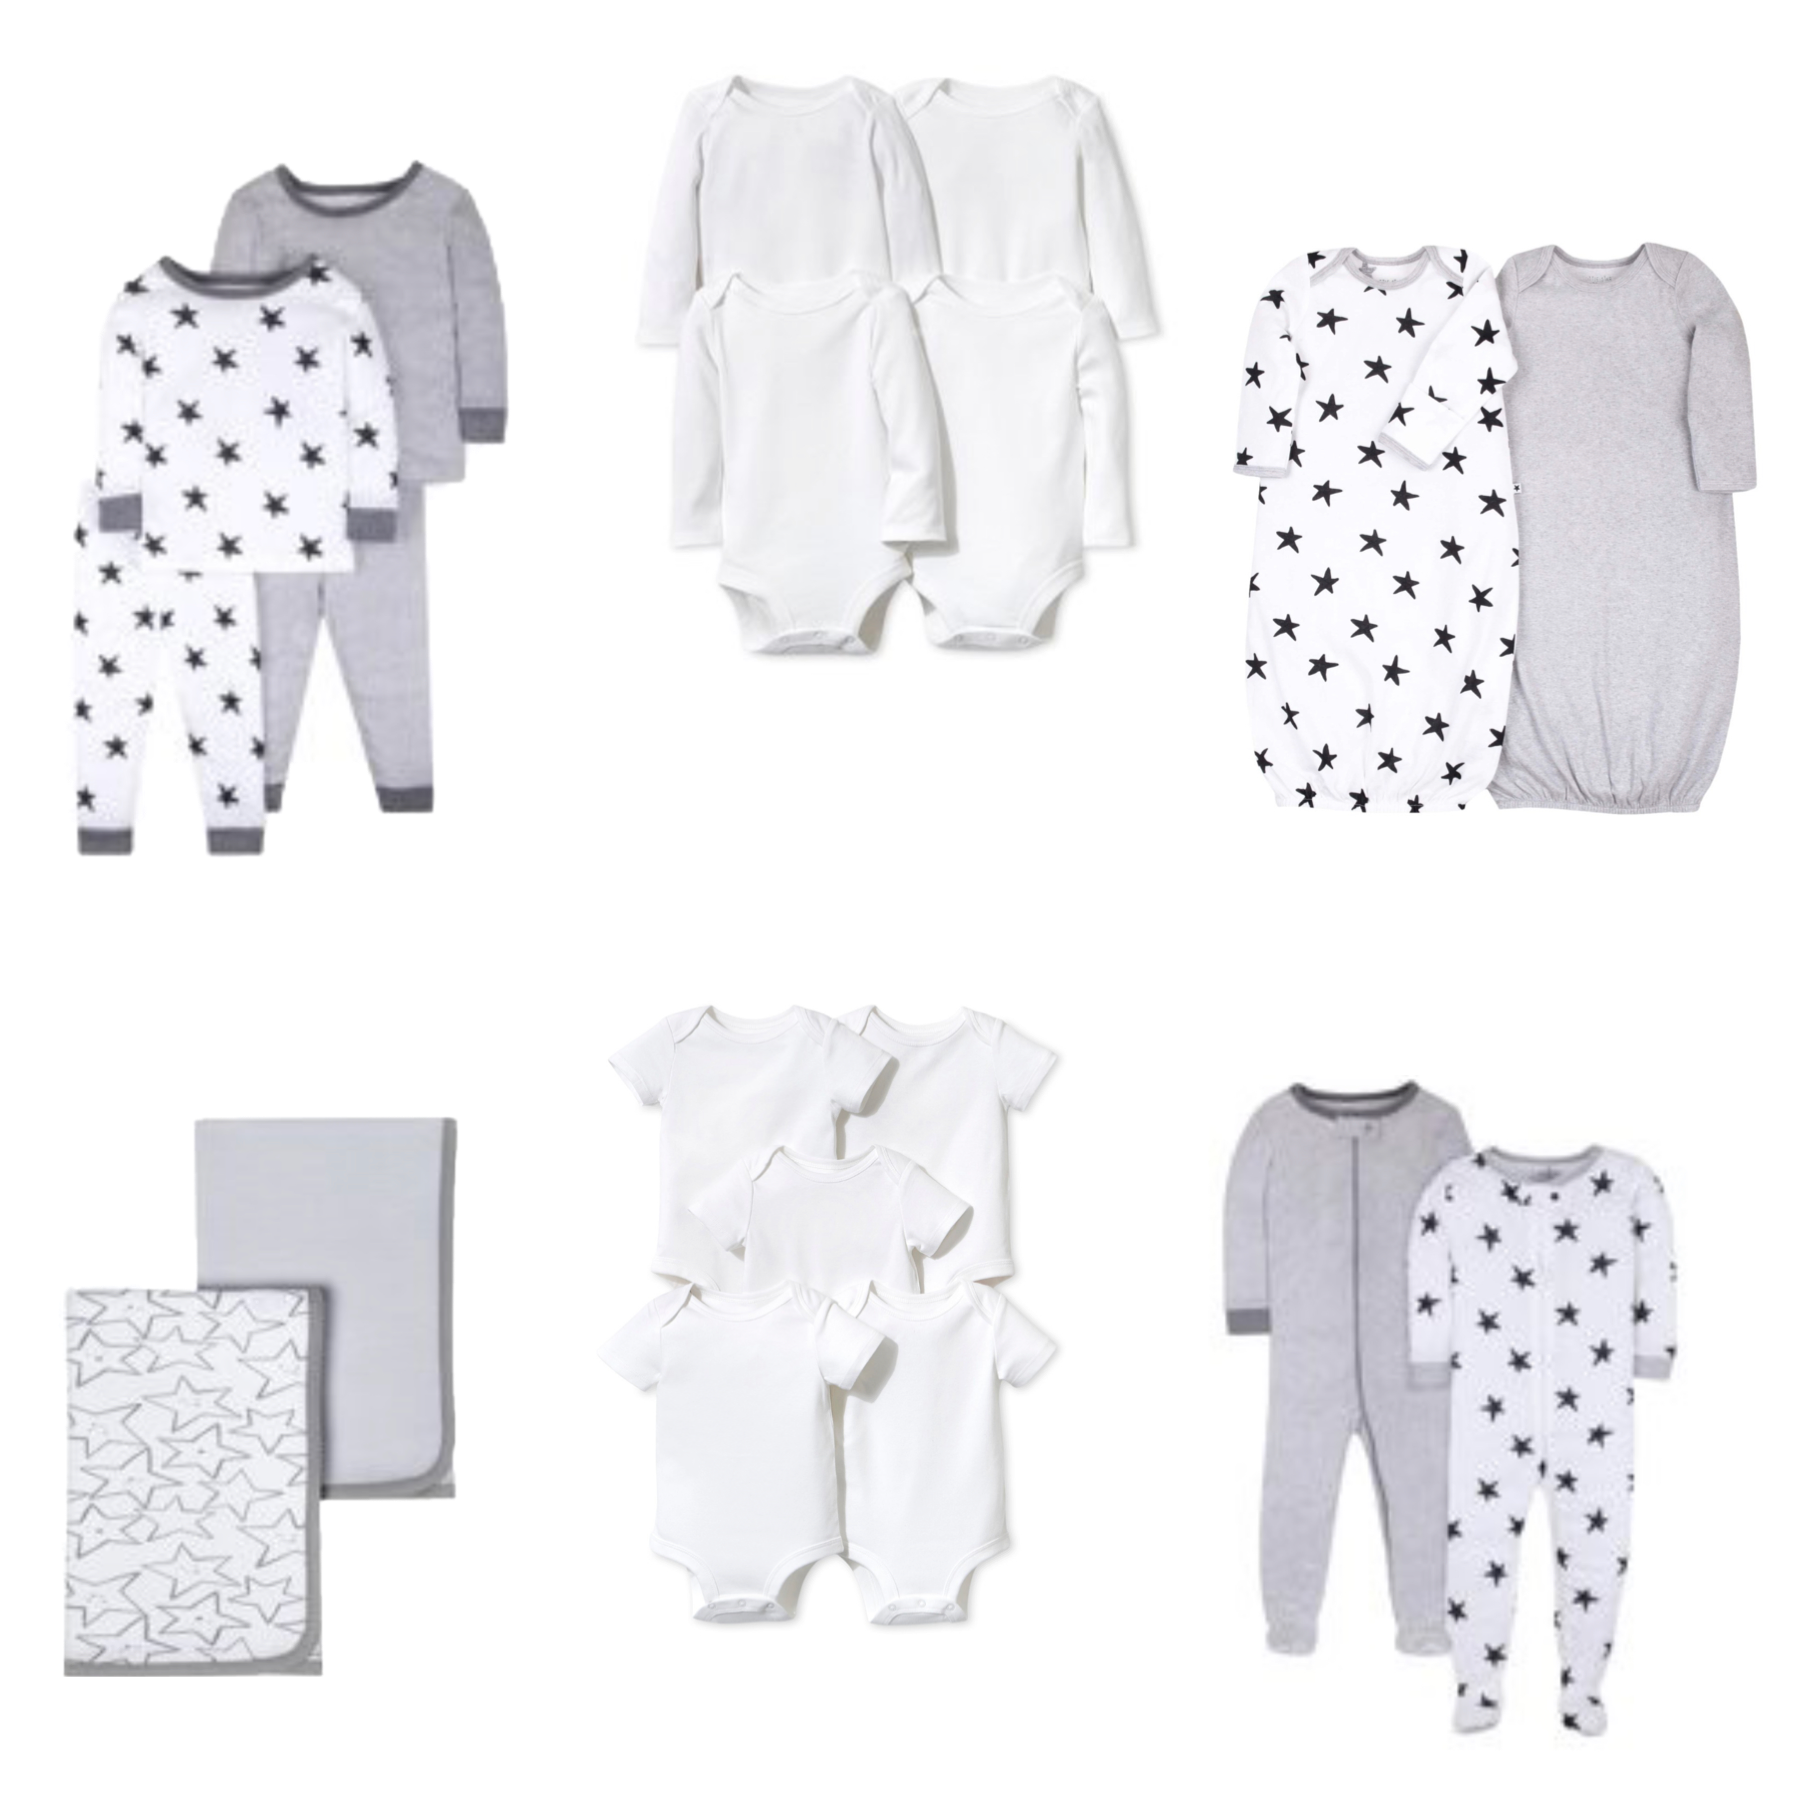 Little Star Organic Children's Clothing